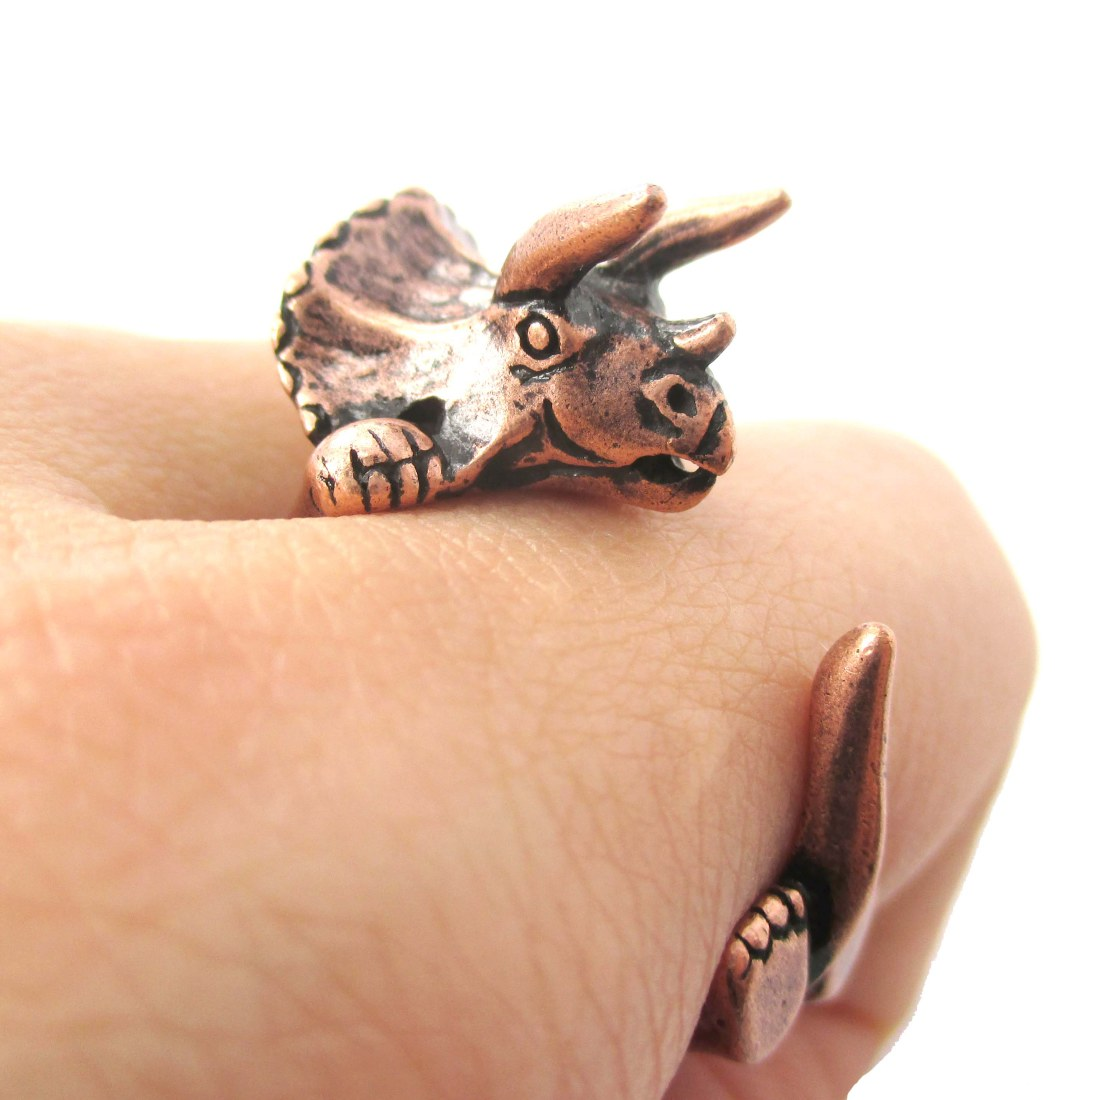 Large Triceratops Dinosaur Animal Wrap Around Hug Ring in Copper | Sizes 4 - 8.5